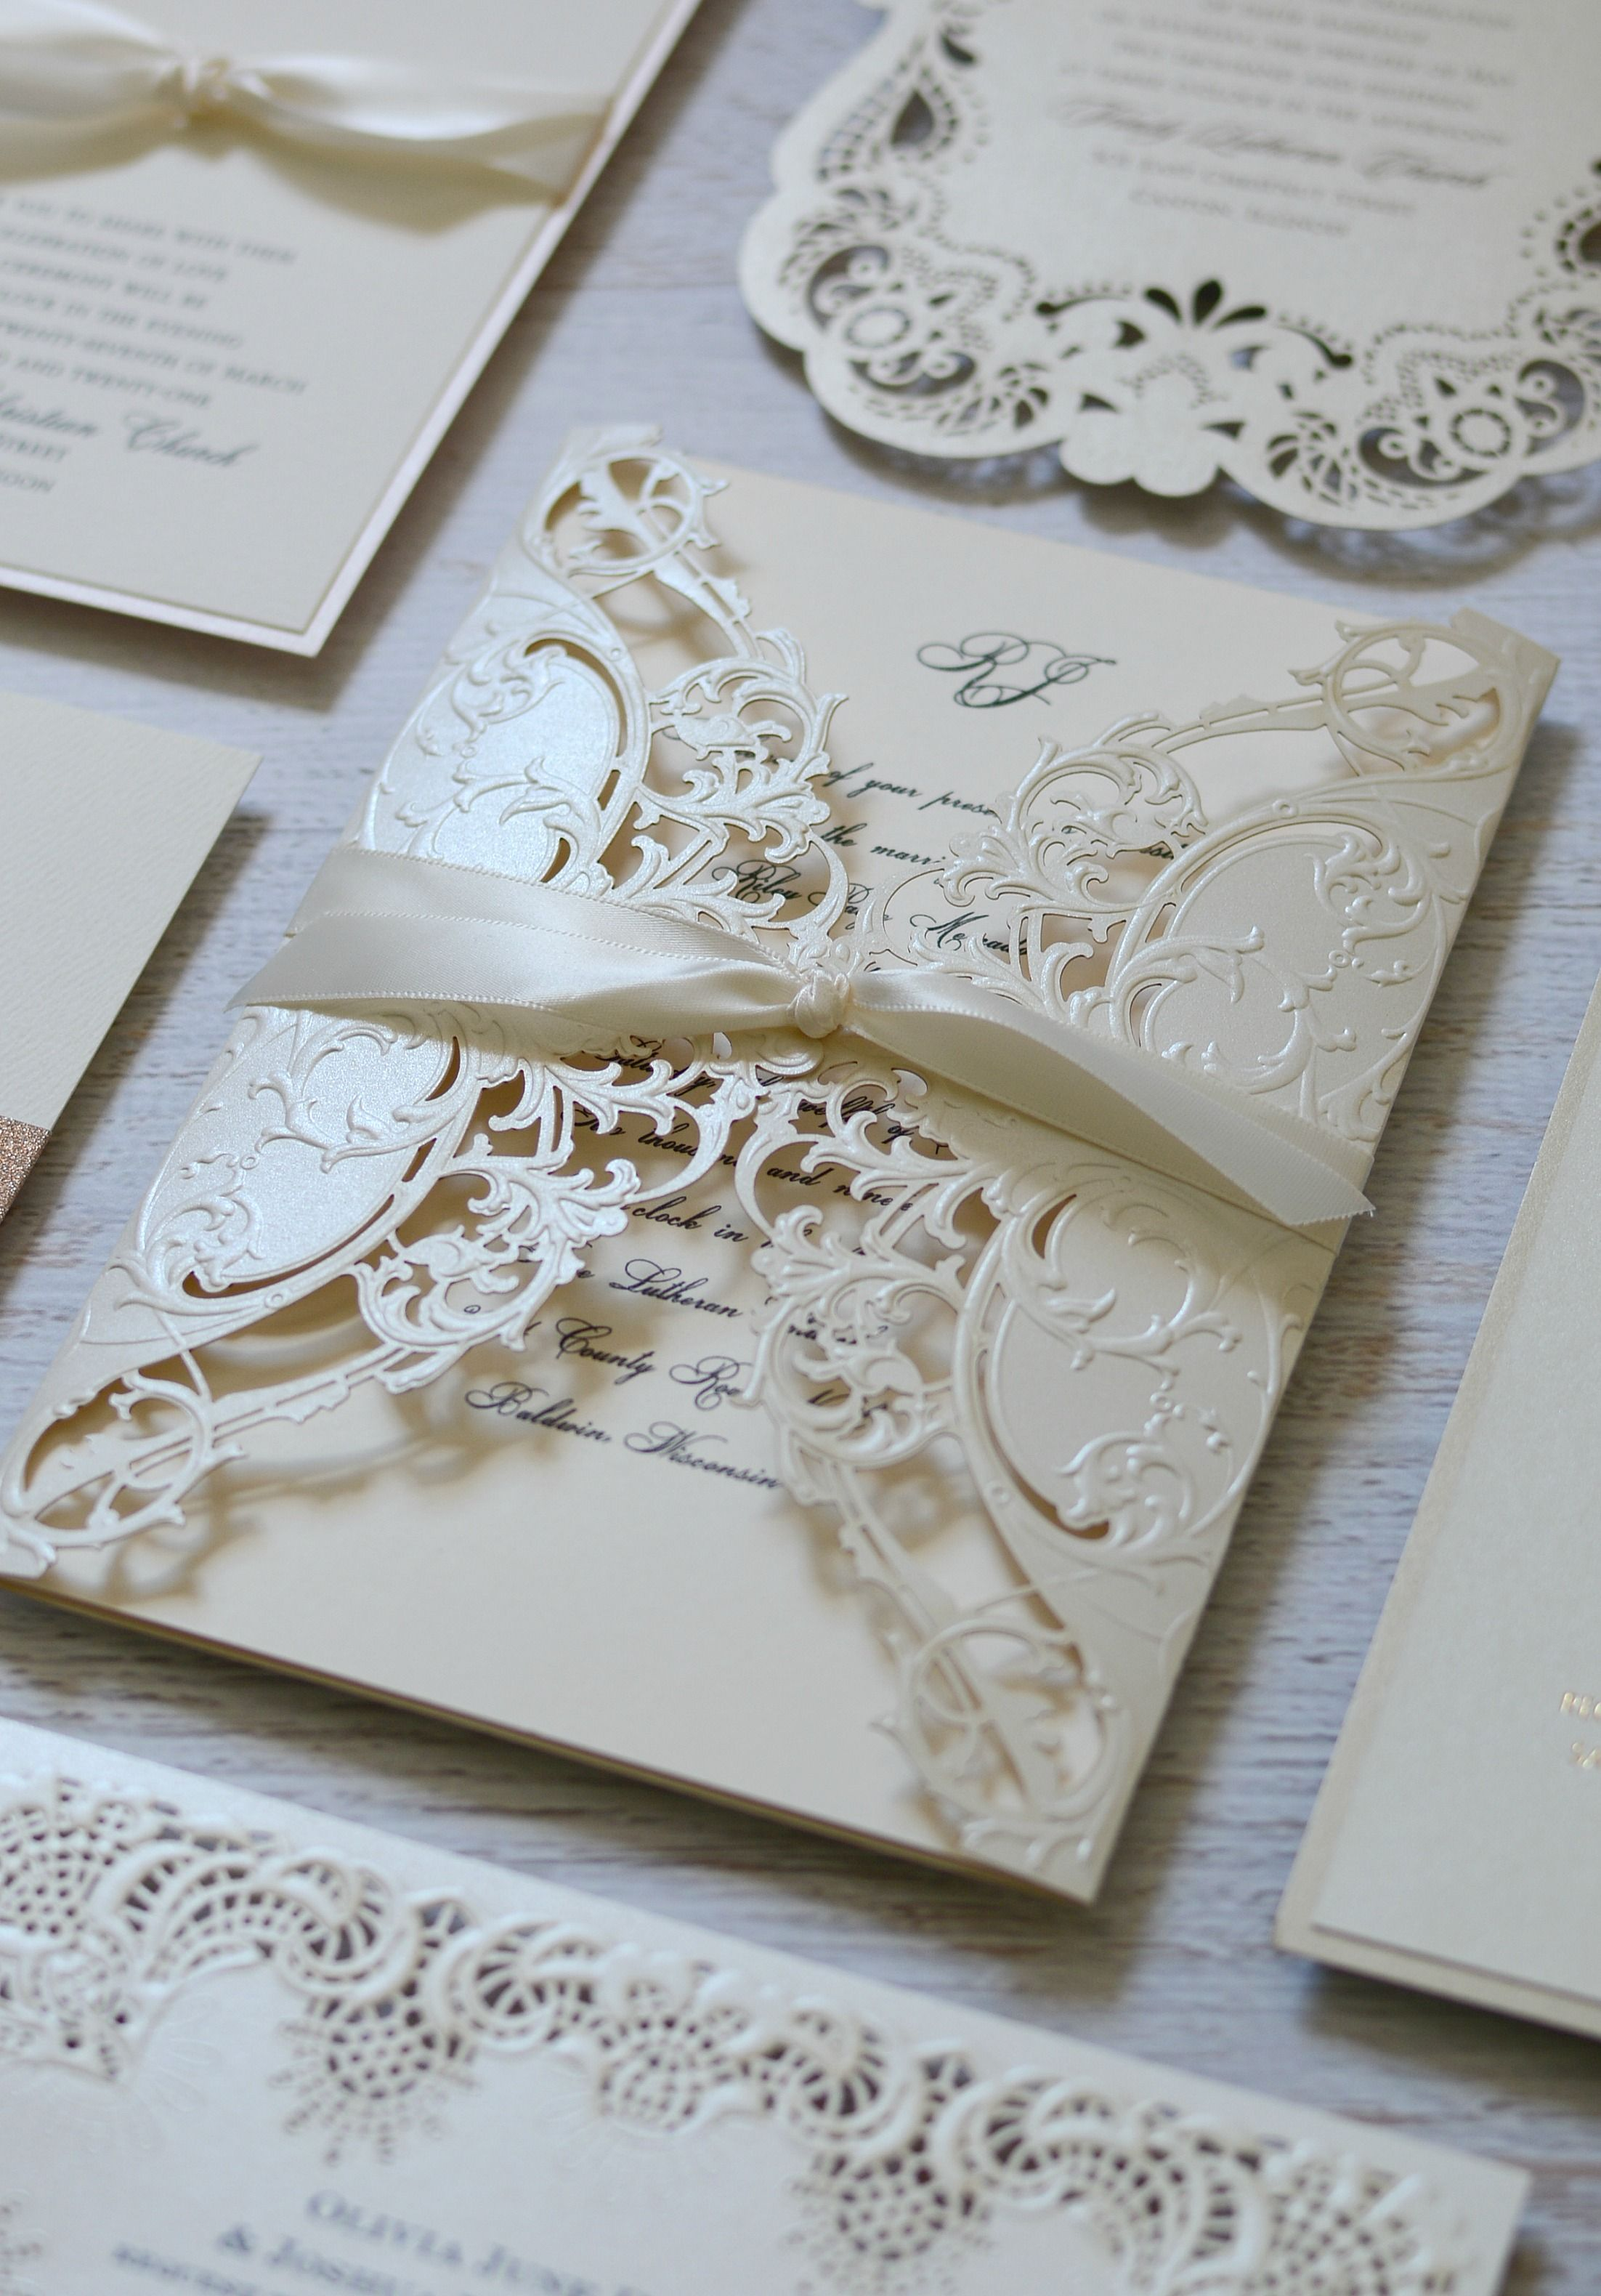 Your wedding invitation sets the tone for